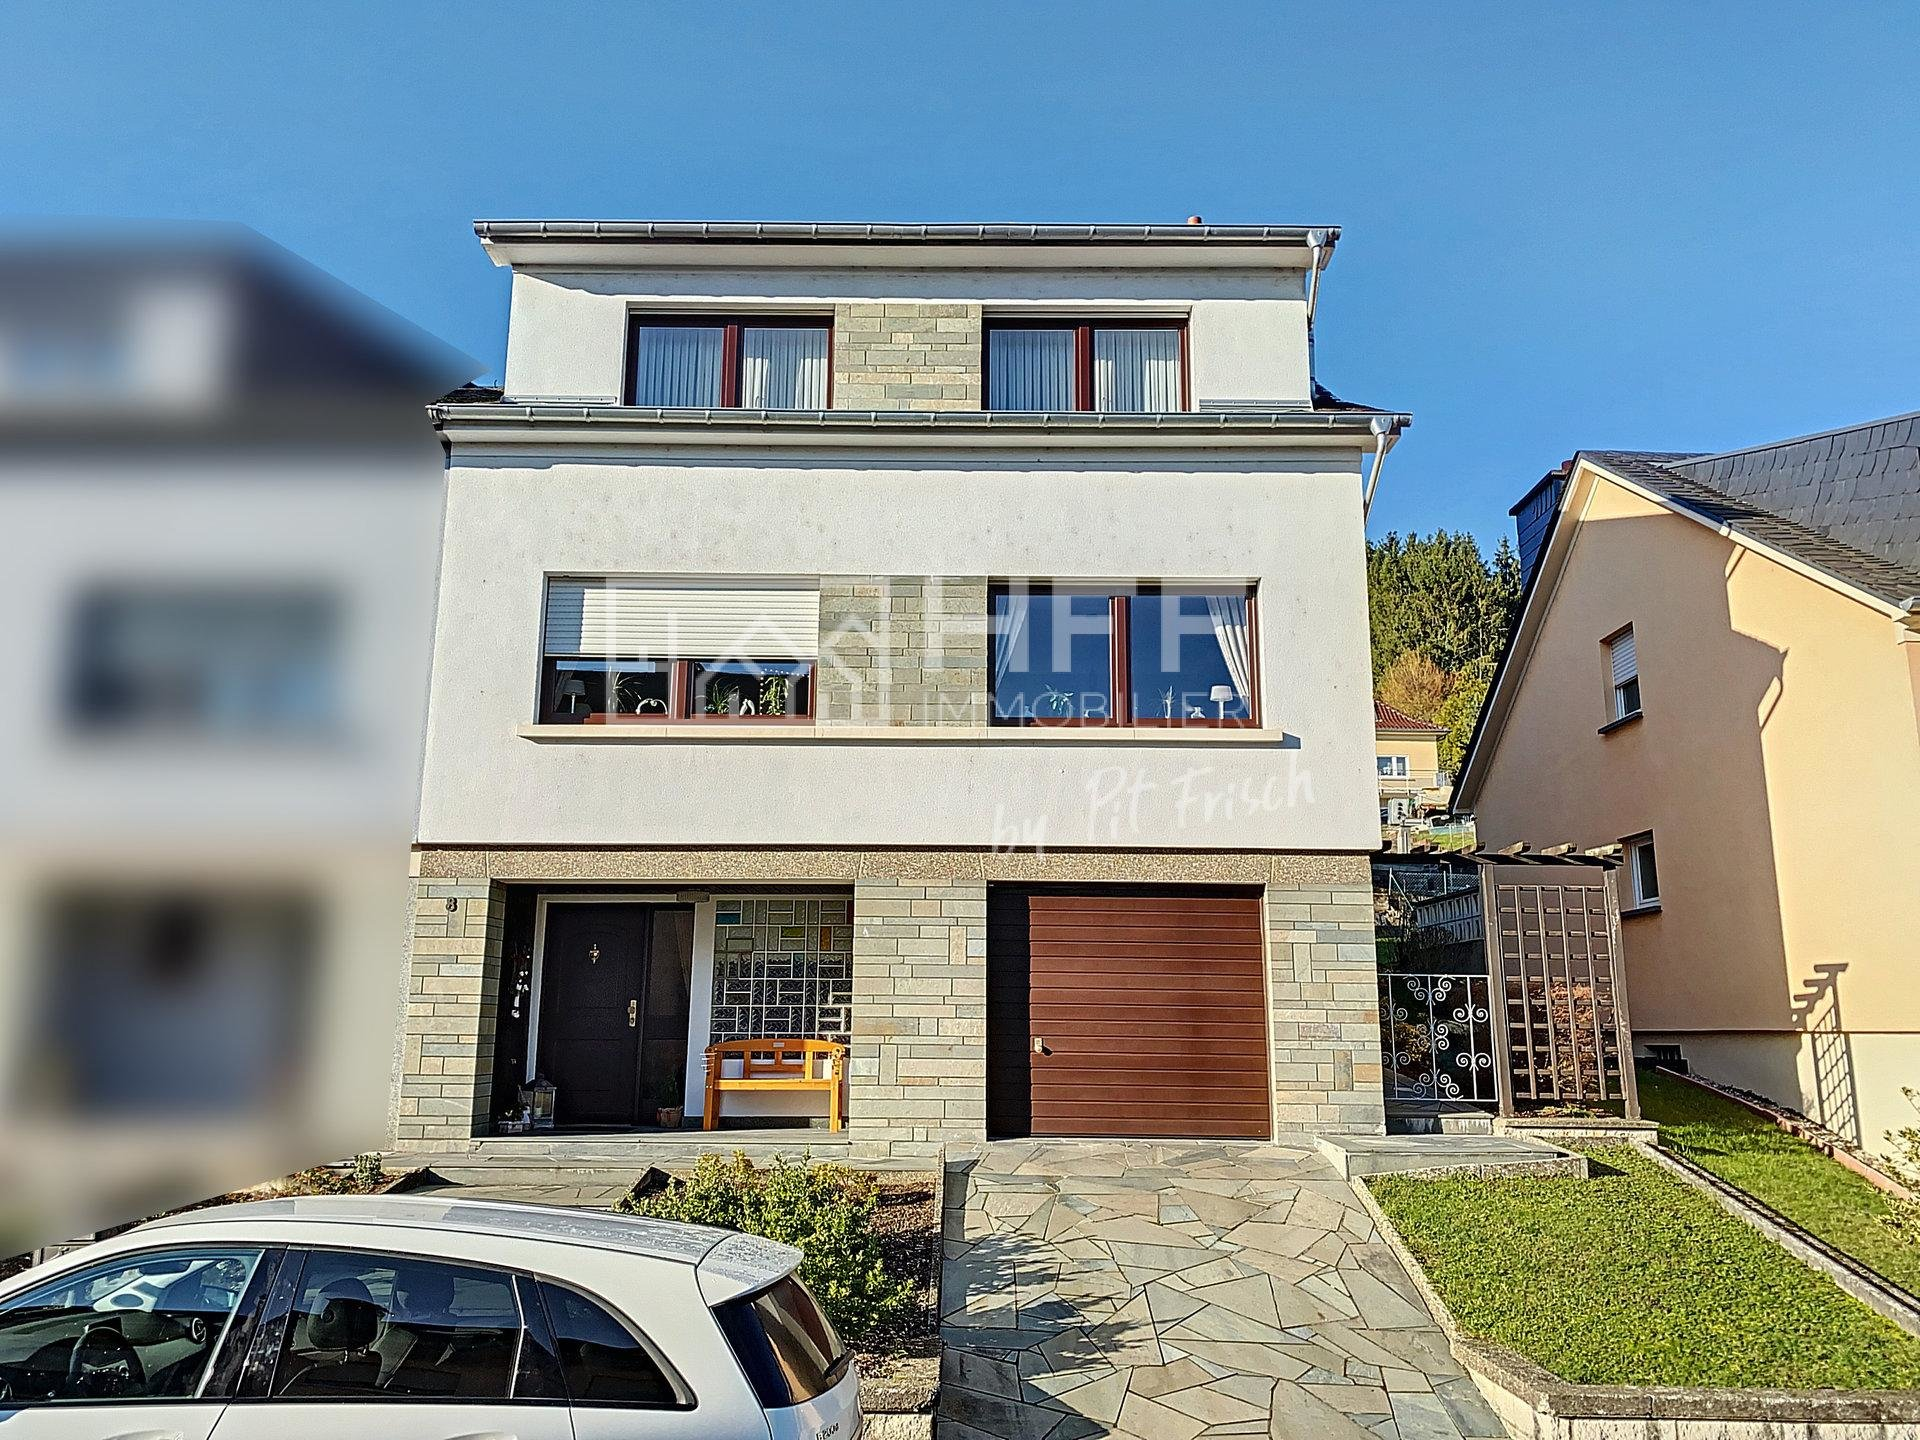 Semi-detached house for sale in Wasserbillig